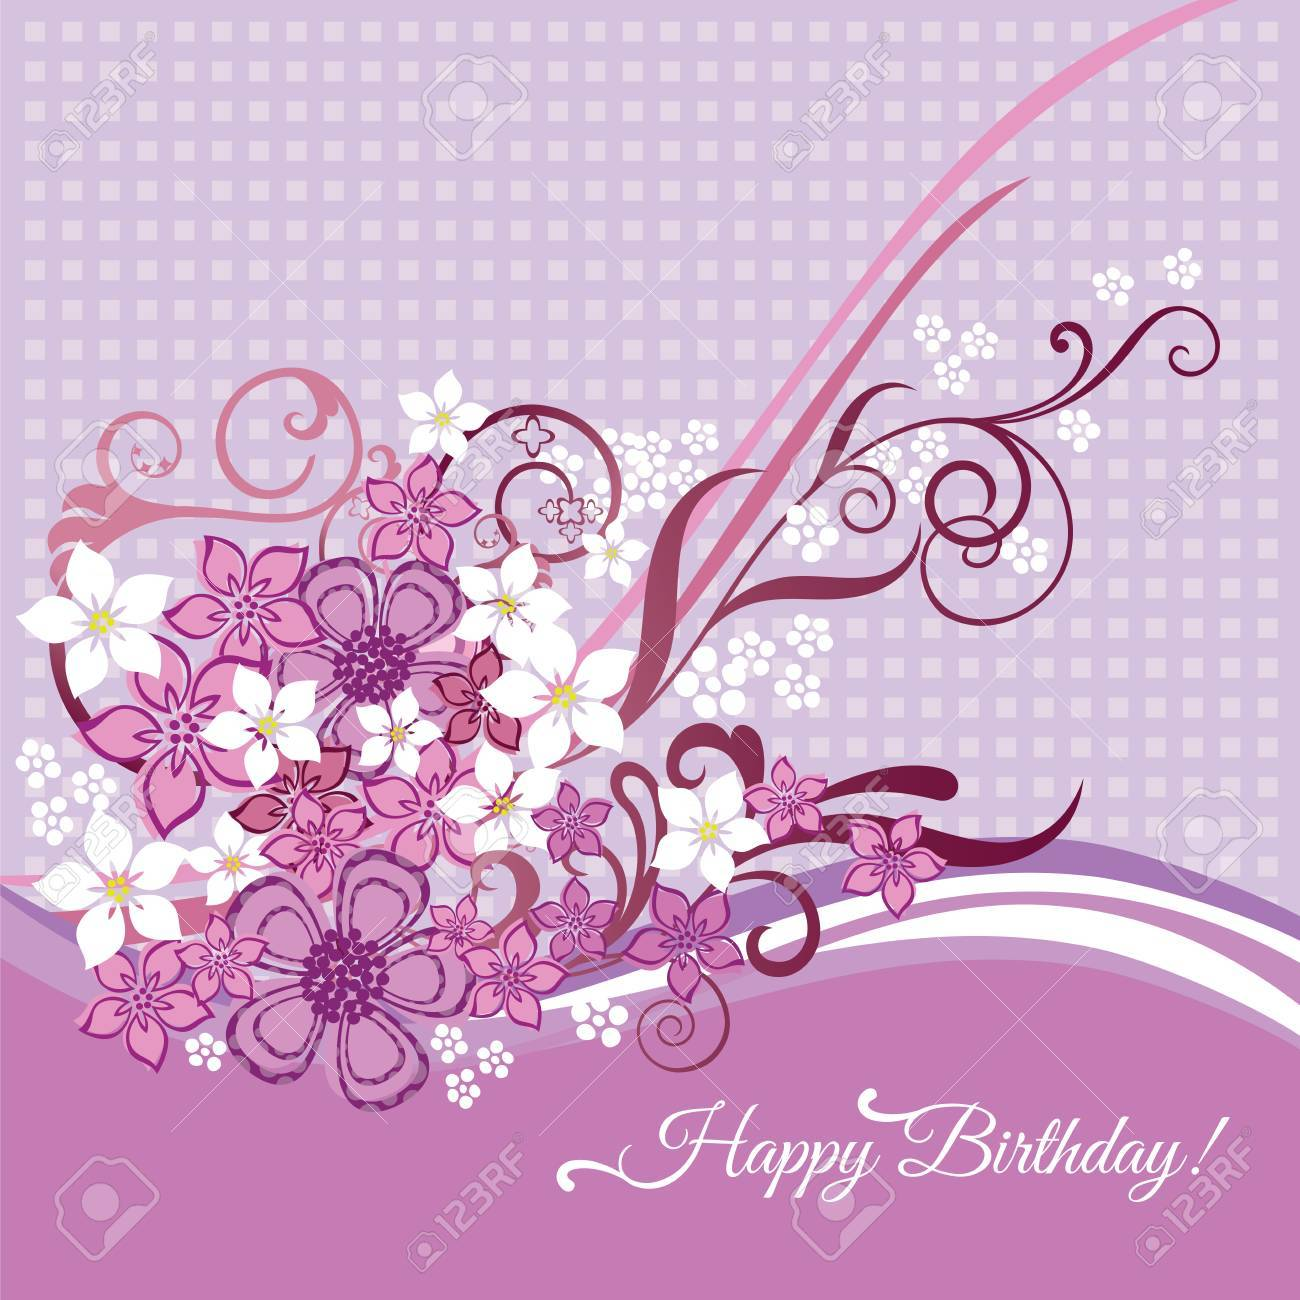 Feminine happy birtday card with pink and white flowers and swirls Stock Vector - 18818767